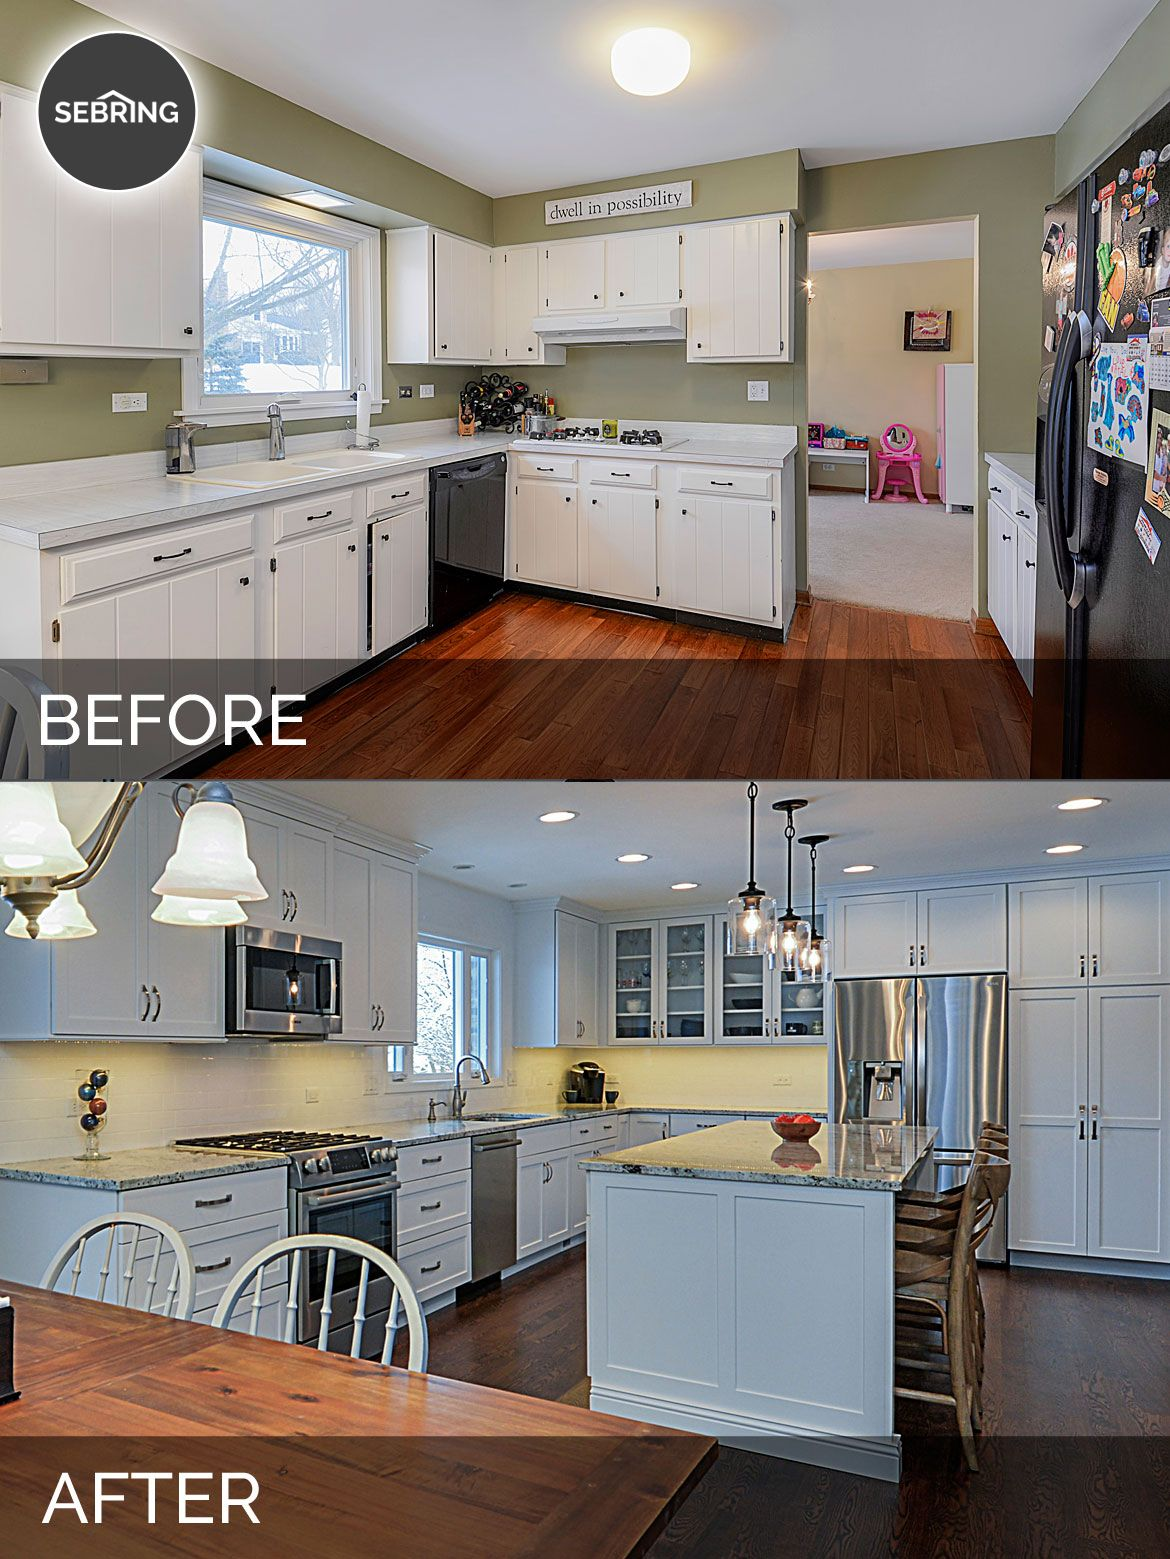 Ryan Missy S Kitchen Before After Pictures Home Remodeling